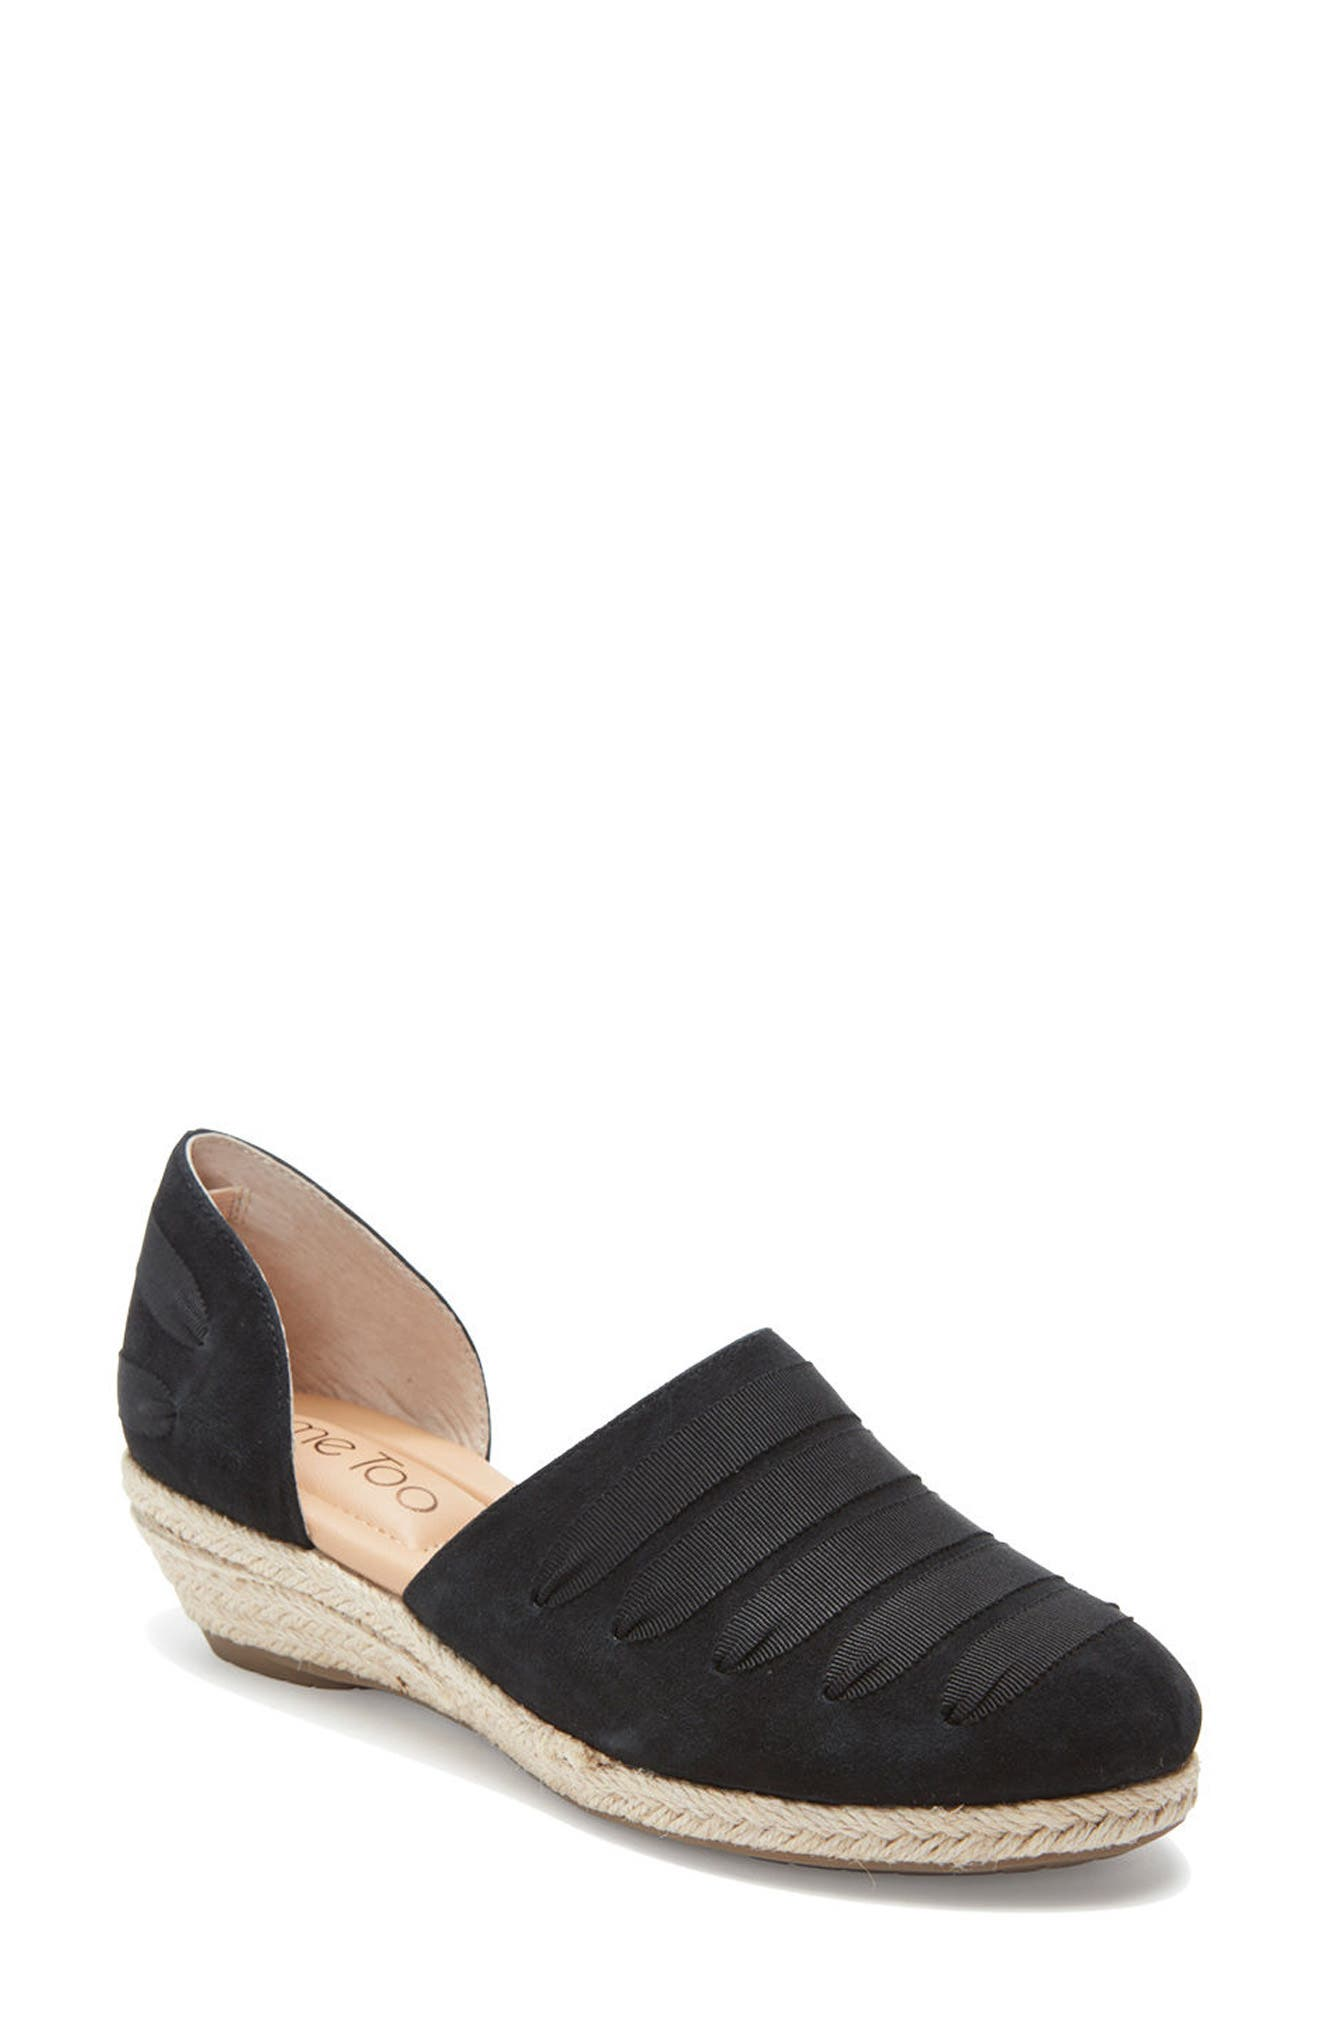 Netta Espadrille Wedge,                             Main thumbnail 1, color,                             014